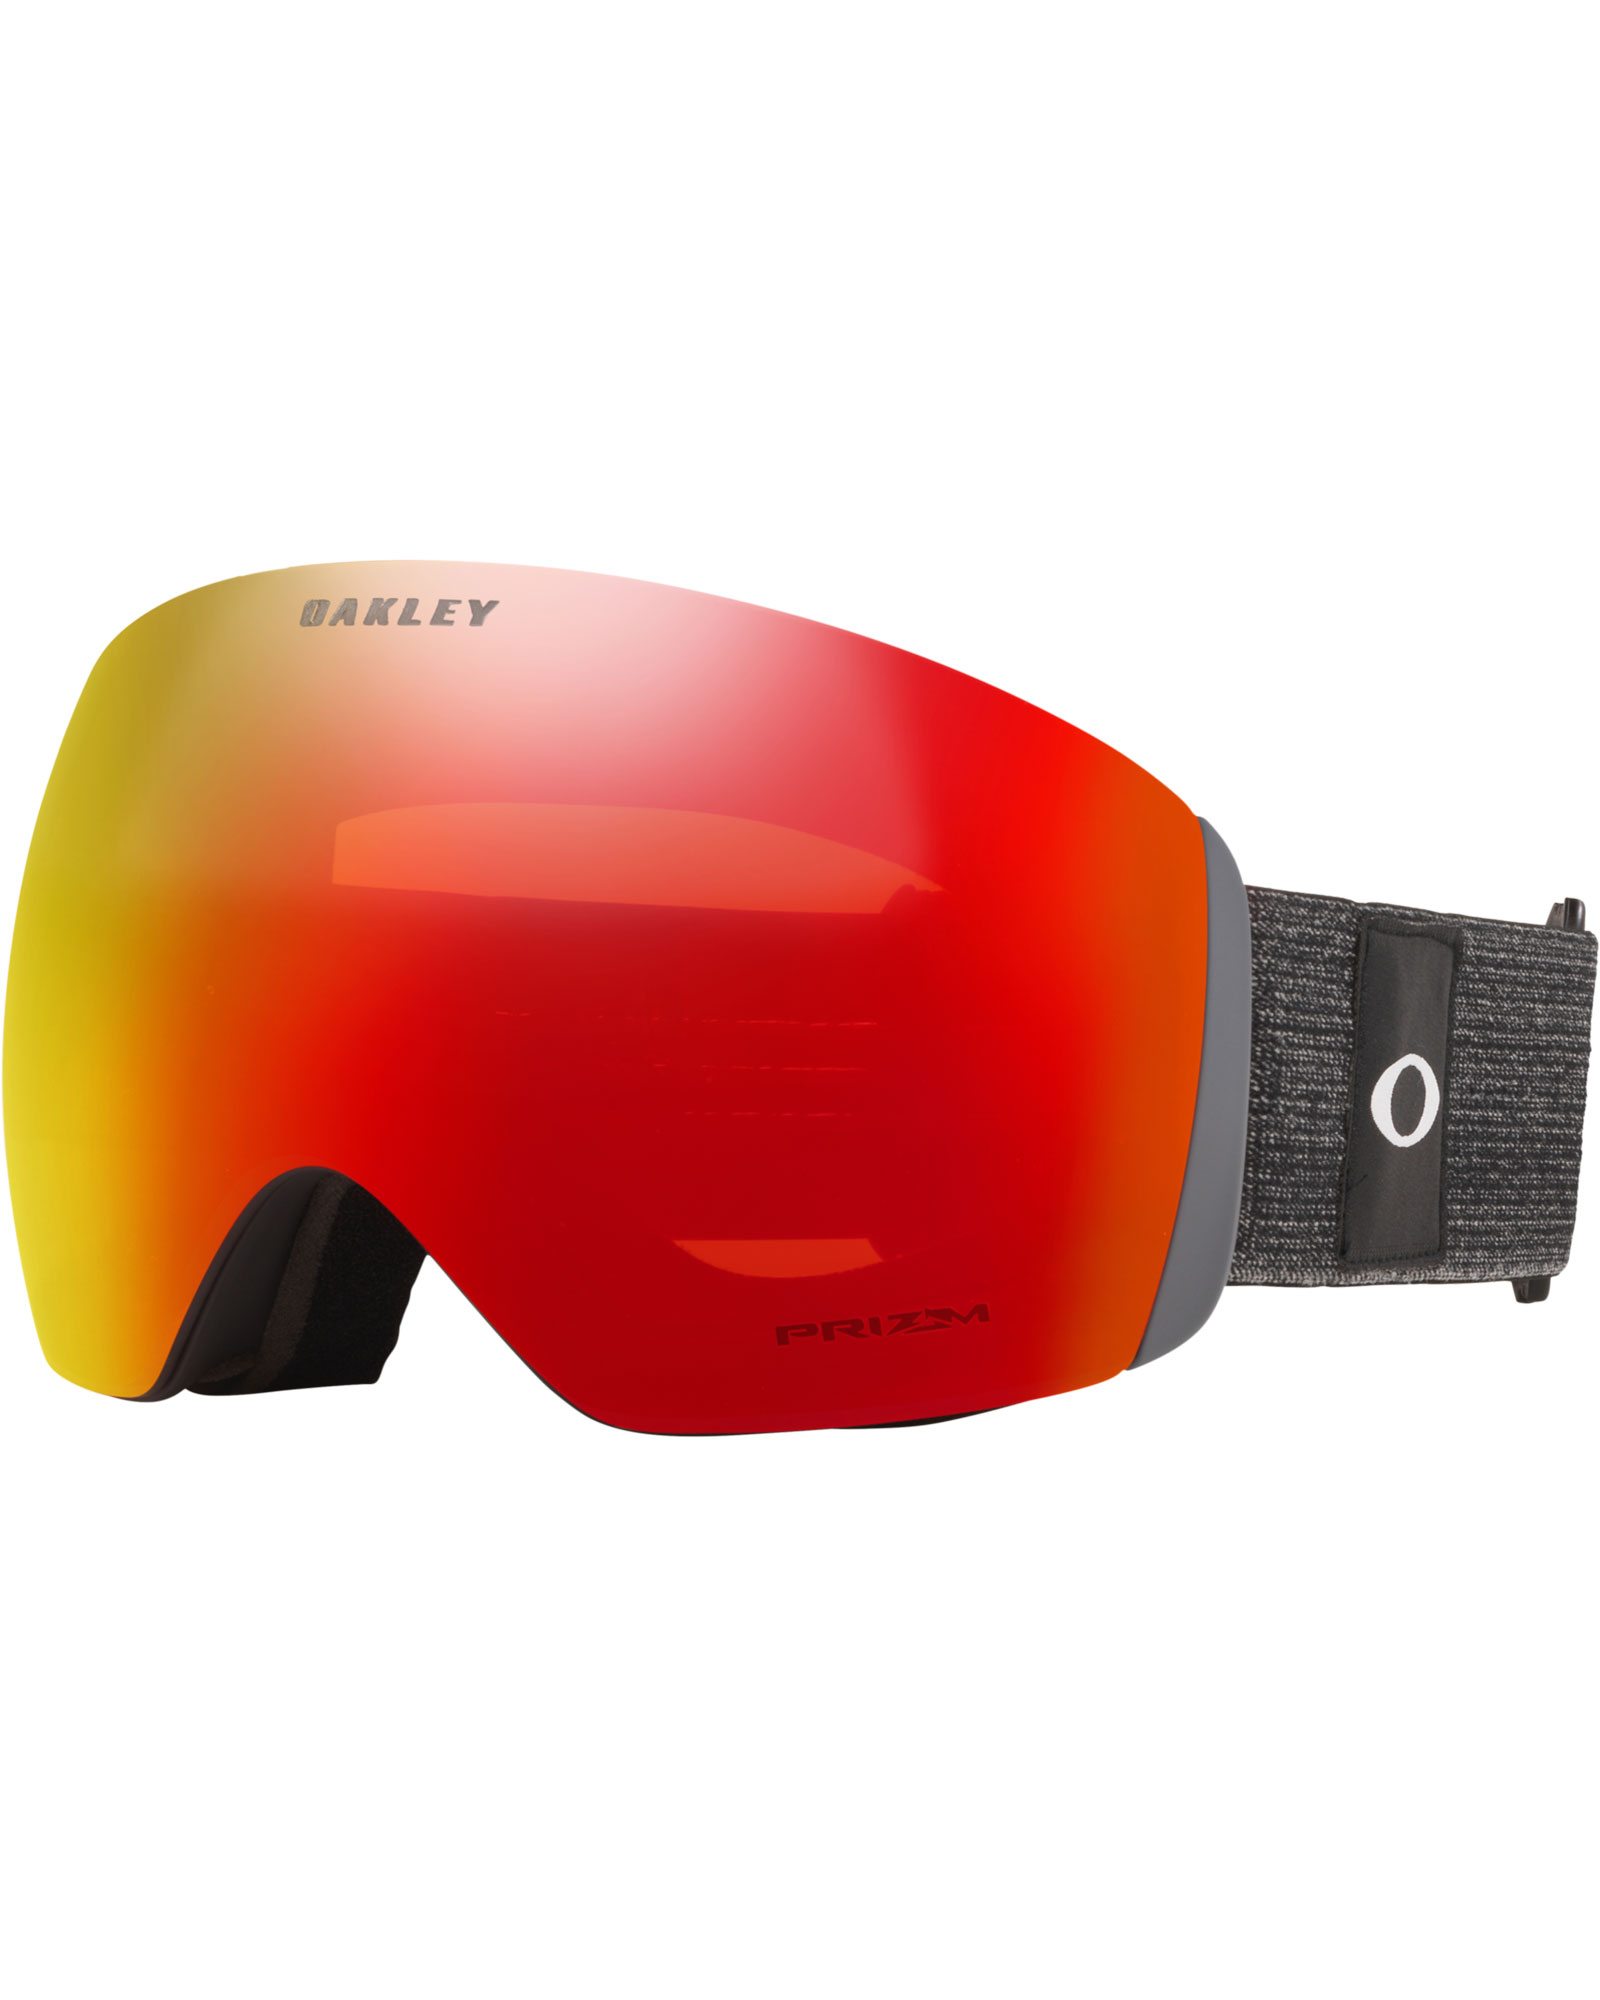 Oakley Flight Deck XL Heathered Black Grey / Prizm Torch Iridium Goggles 2020 / 2021 0